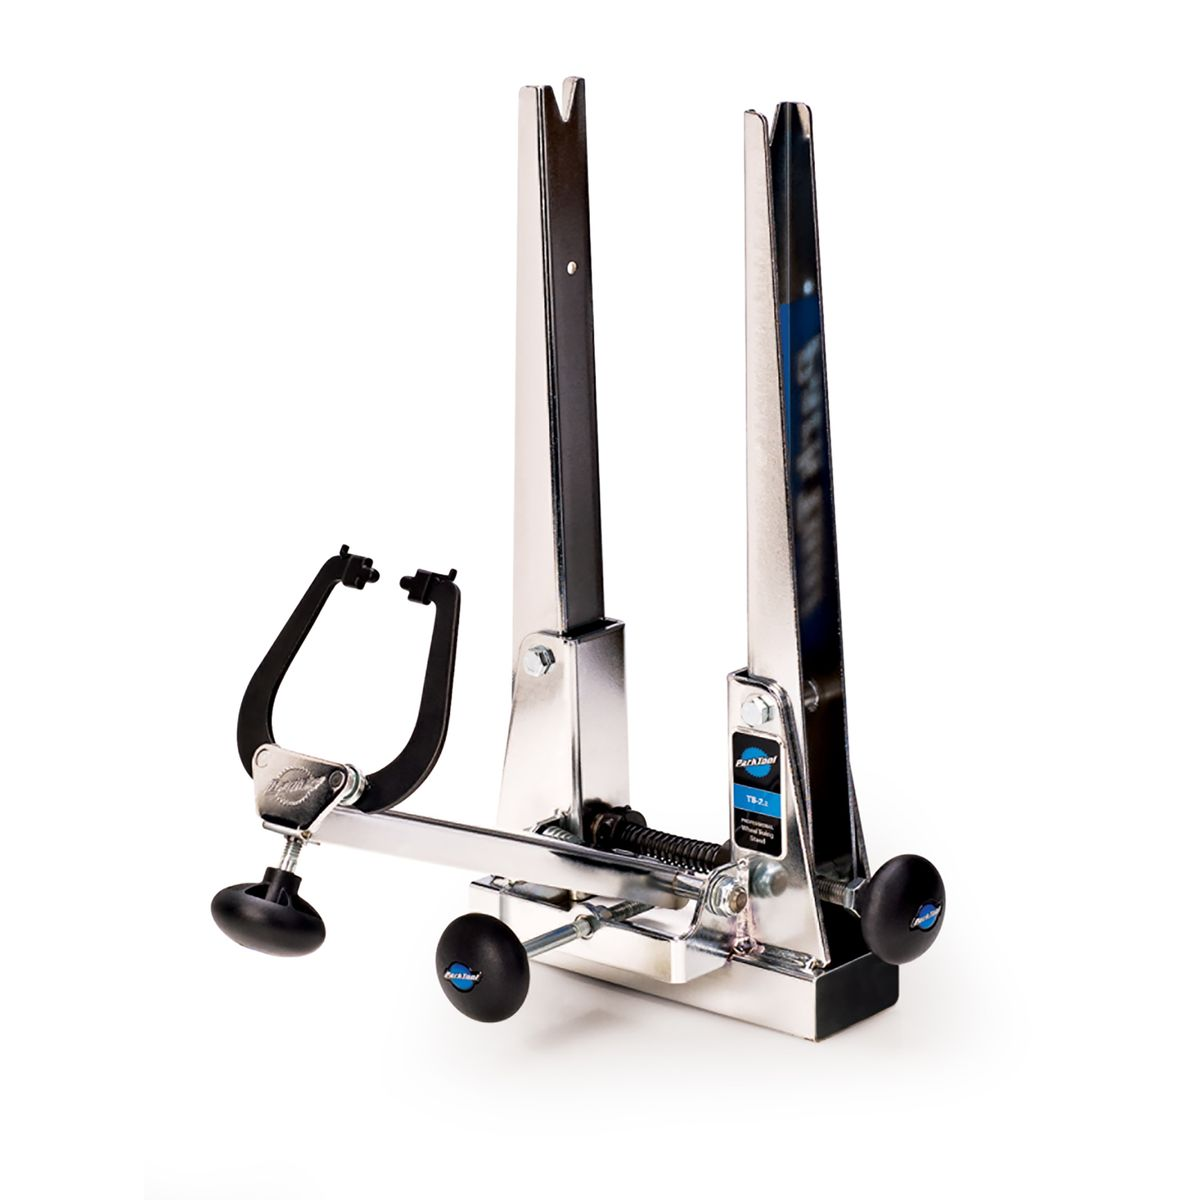 NEW Park Tool TS-2.2 Pro Wheel Truing Stand